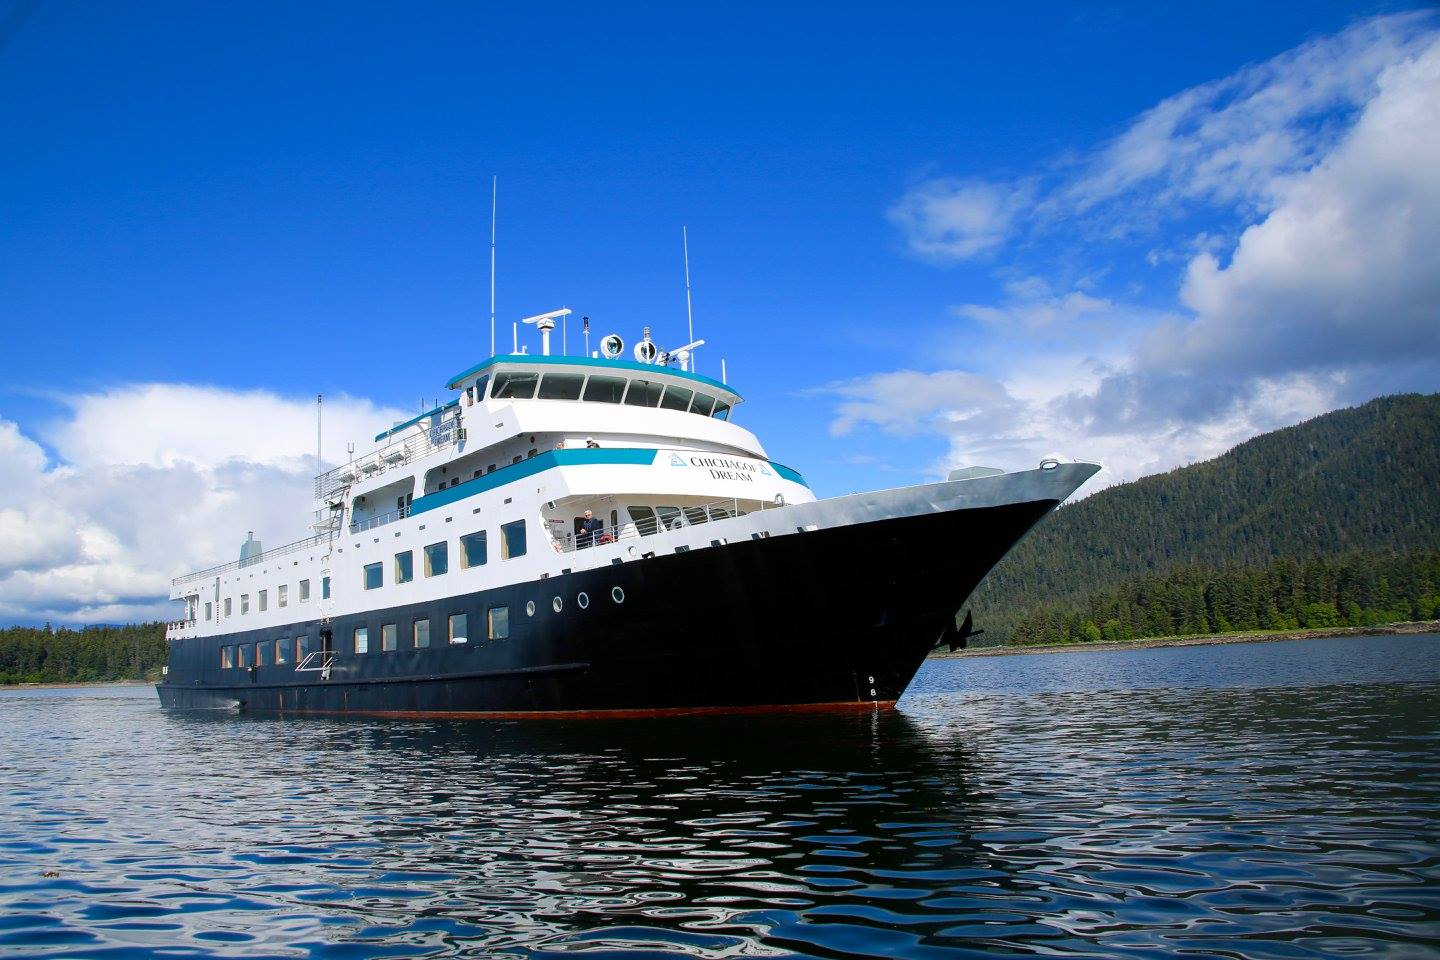 Chichagof Dream, the ship servicing Alaska's Glacier Bay Adventure (Chichagof Dream)